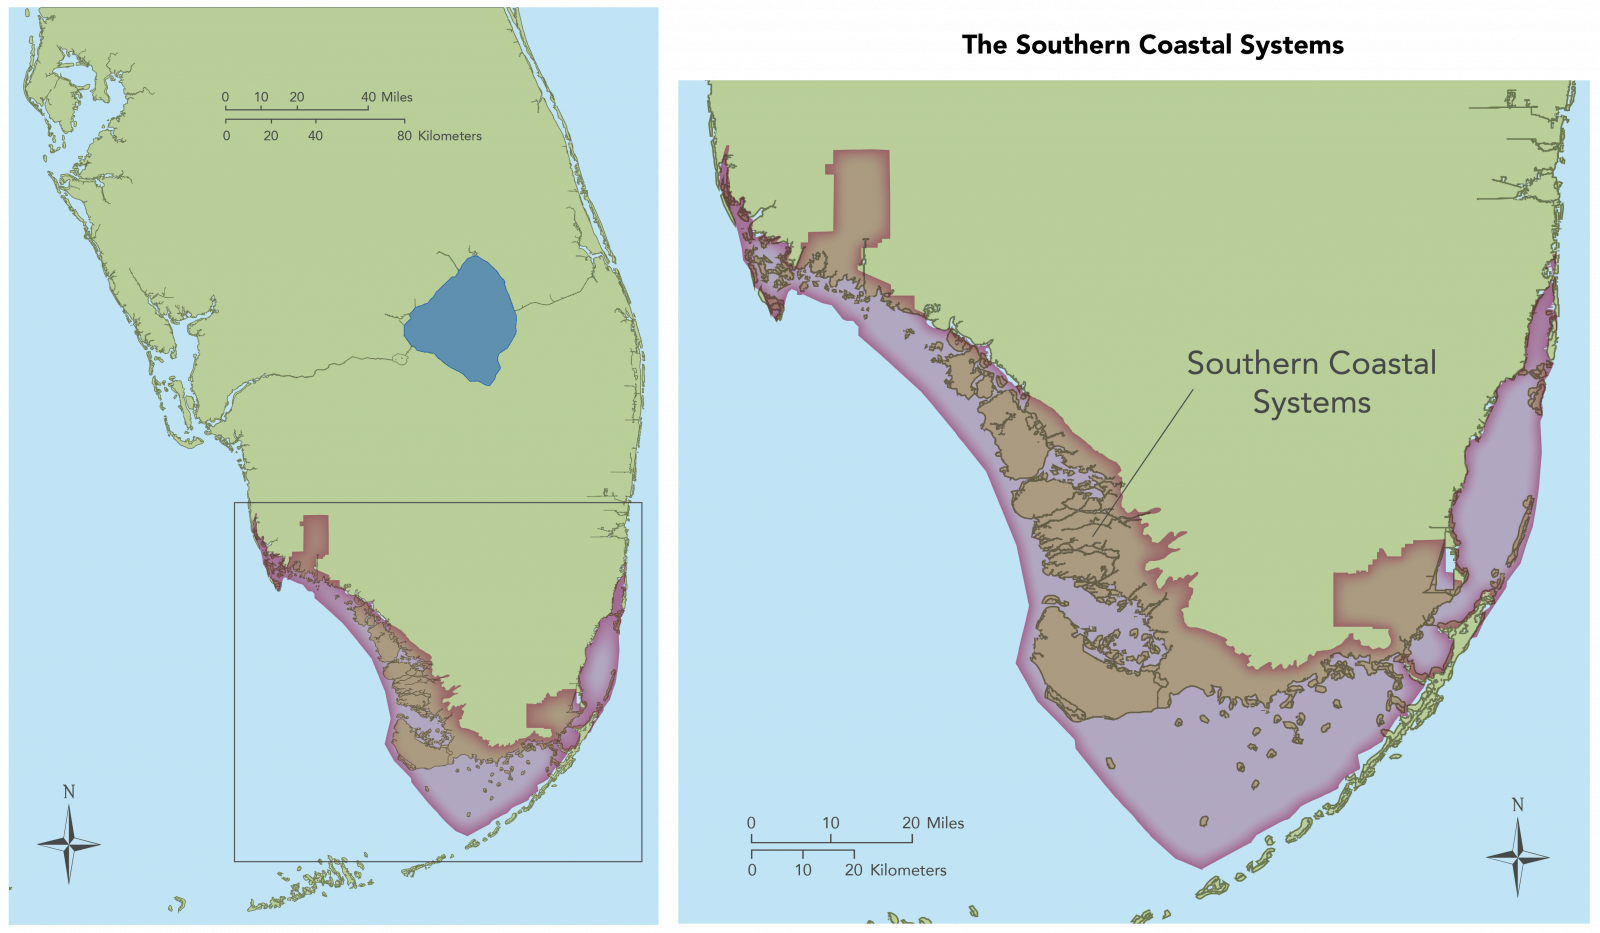 Map showing long view and detail view of the Southern Coastal areas.